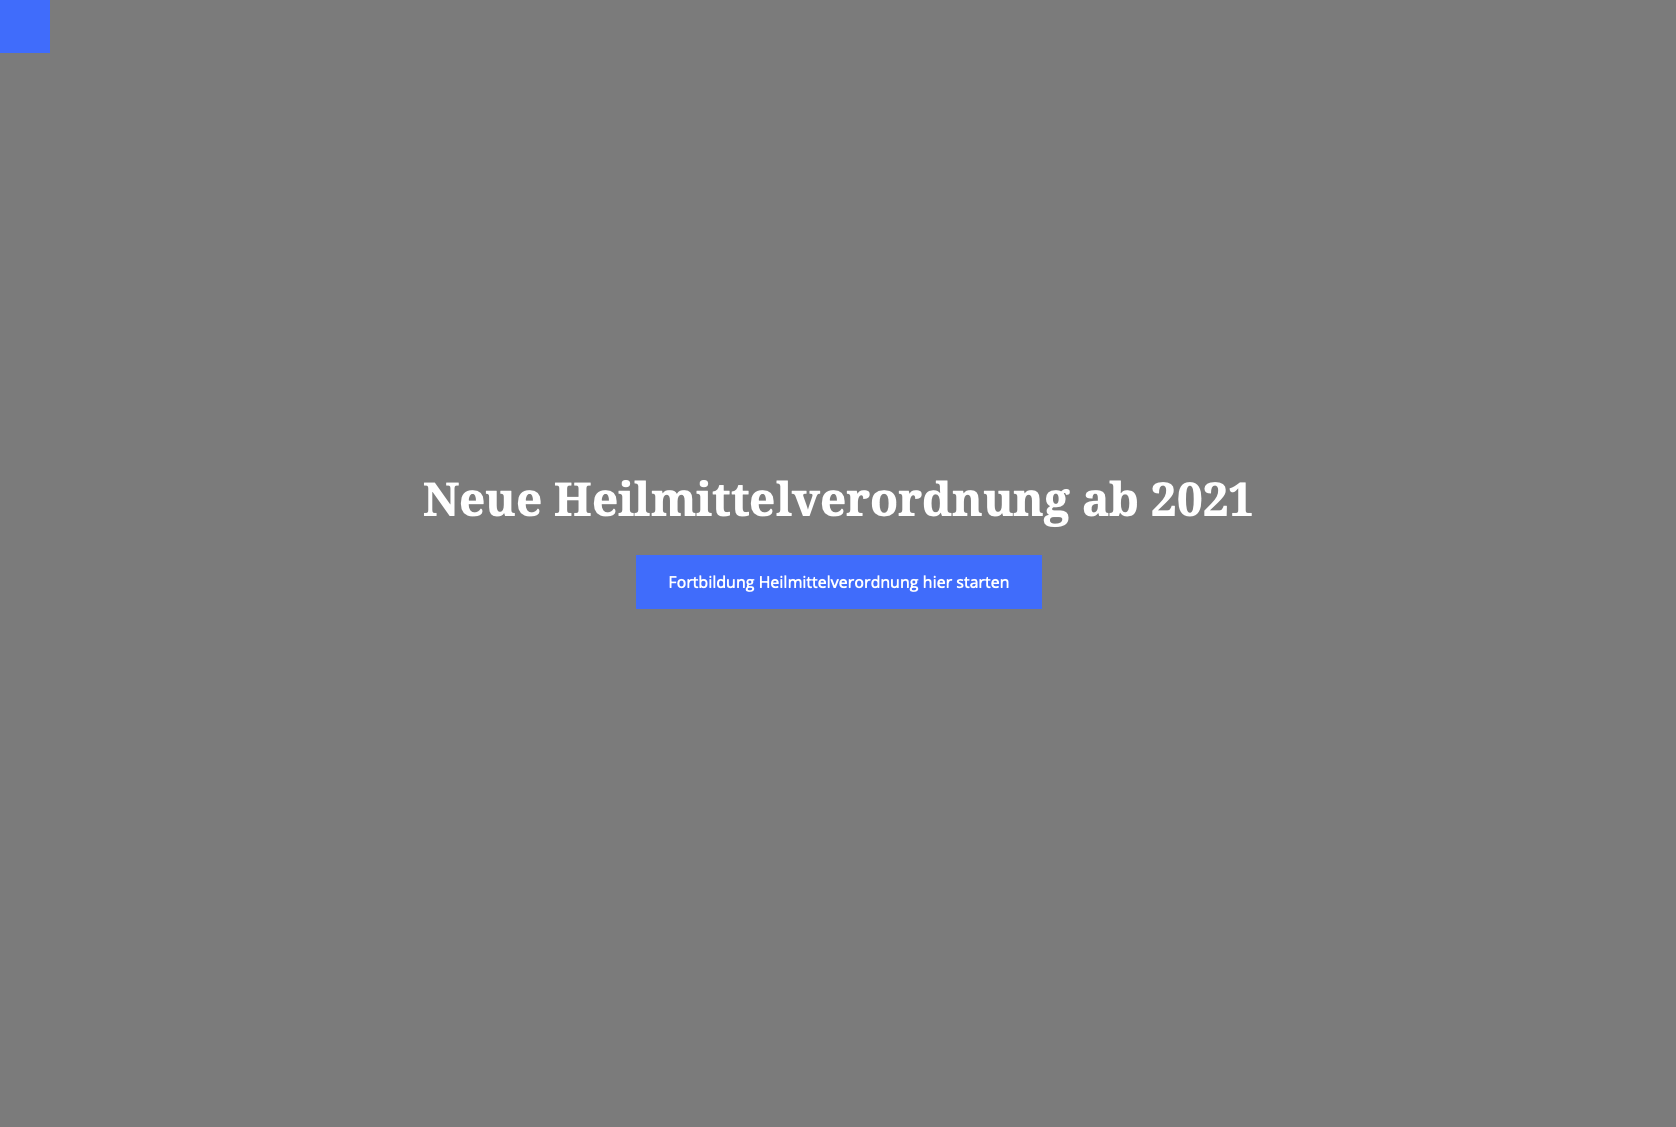 https://facharztzentrum-wertheim.de/wp-content/uploads/2020/12/Bildschirmfoto-2020-12-02-um-18.31.39.png